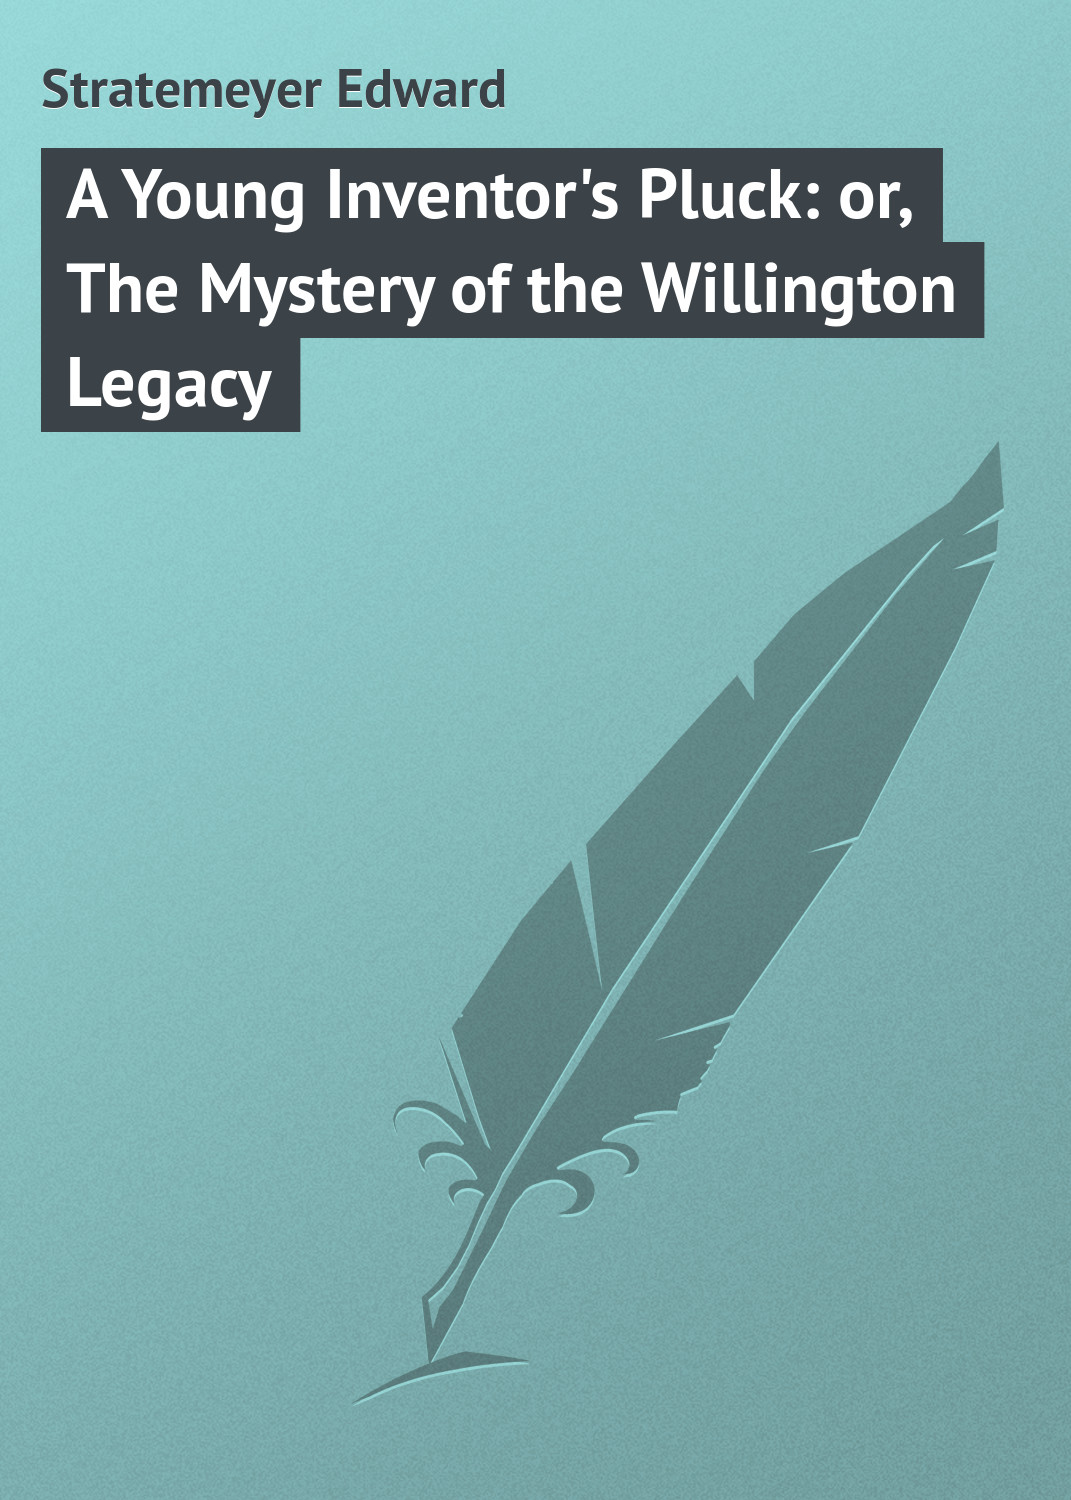 Stratemeyer Edward A Young Inventor's Pluck: or, The Mystery of the Willington Legacy stratemeyer edward the putnam hall rebellion